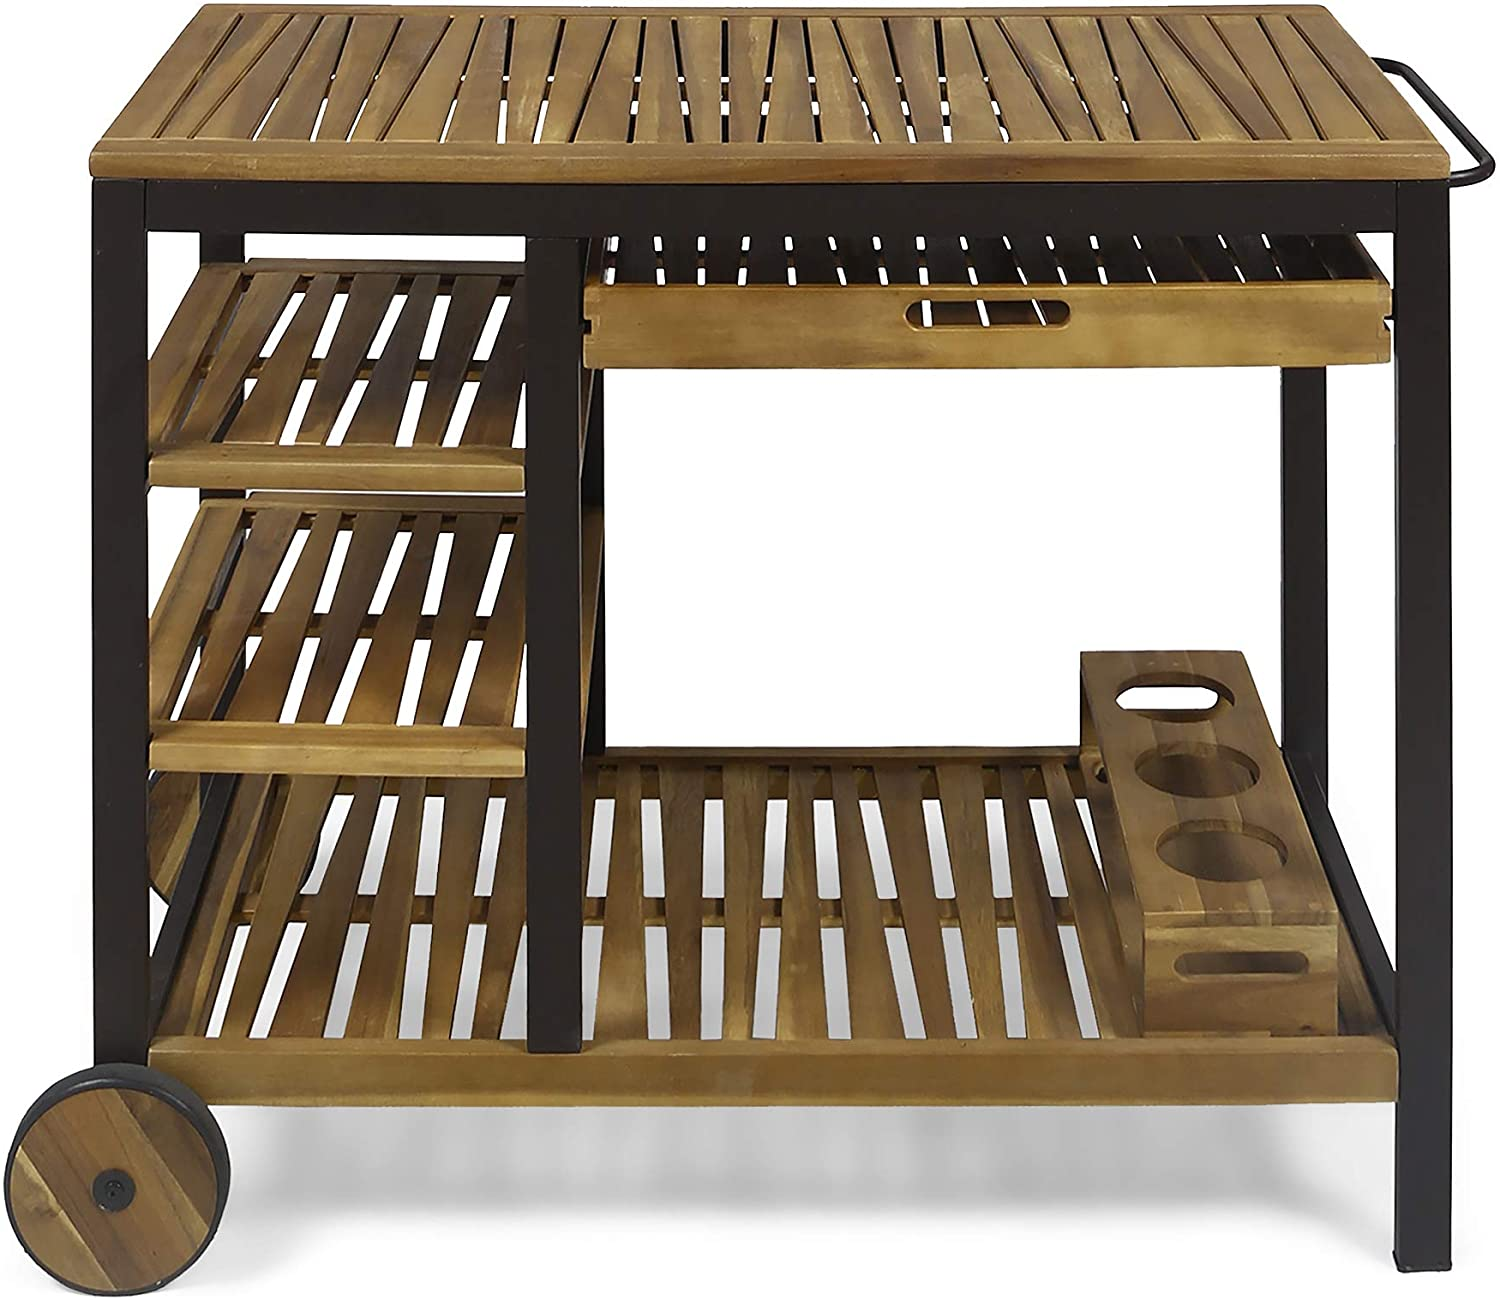 Christopher Knight Home 308856 Challenge the lowest price of Japan Ishtar Outdoor Bar Phoenix Mall Teak Cart Fin